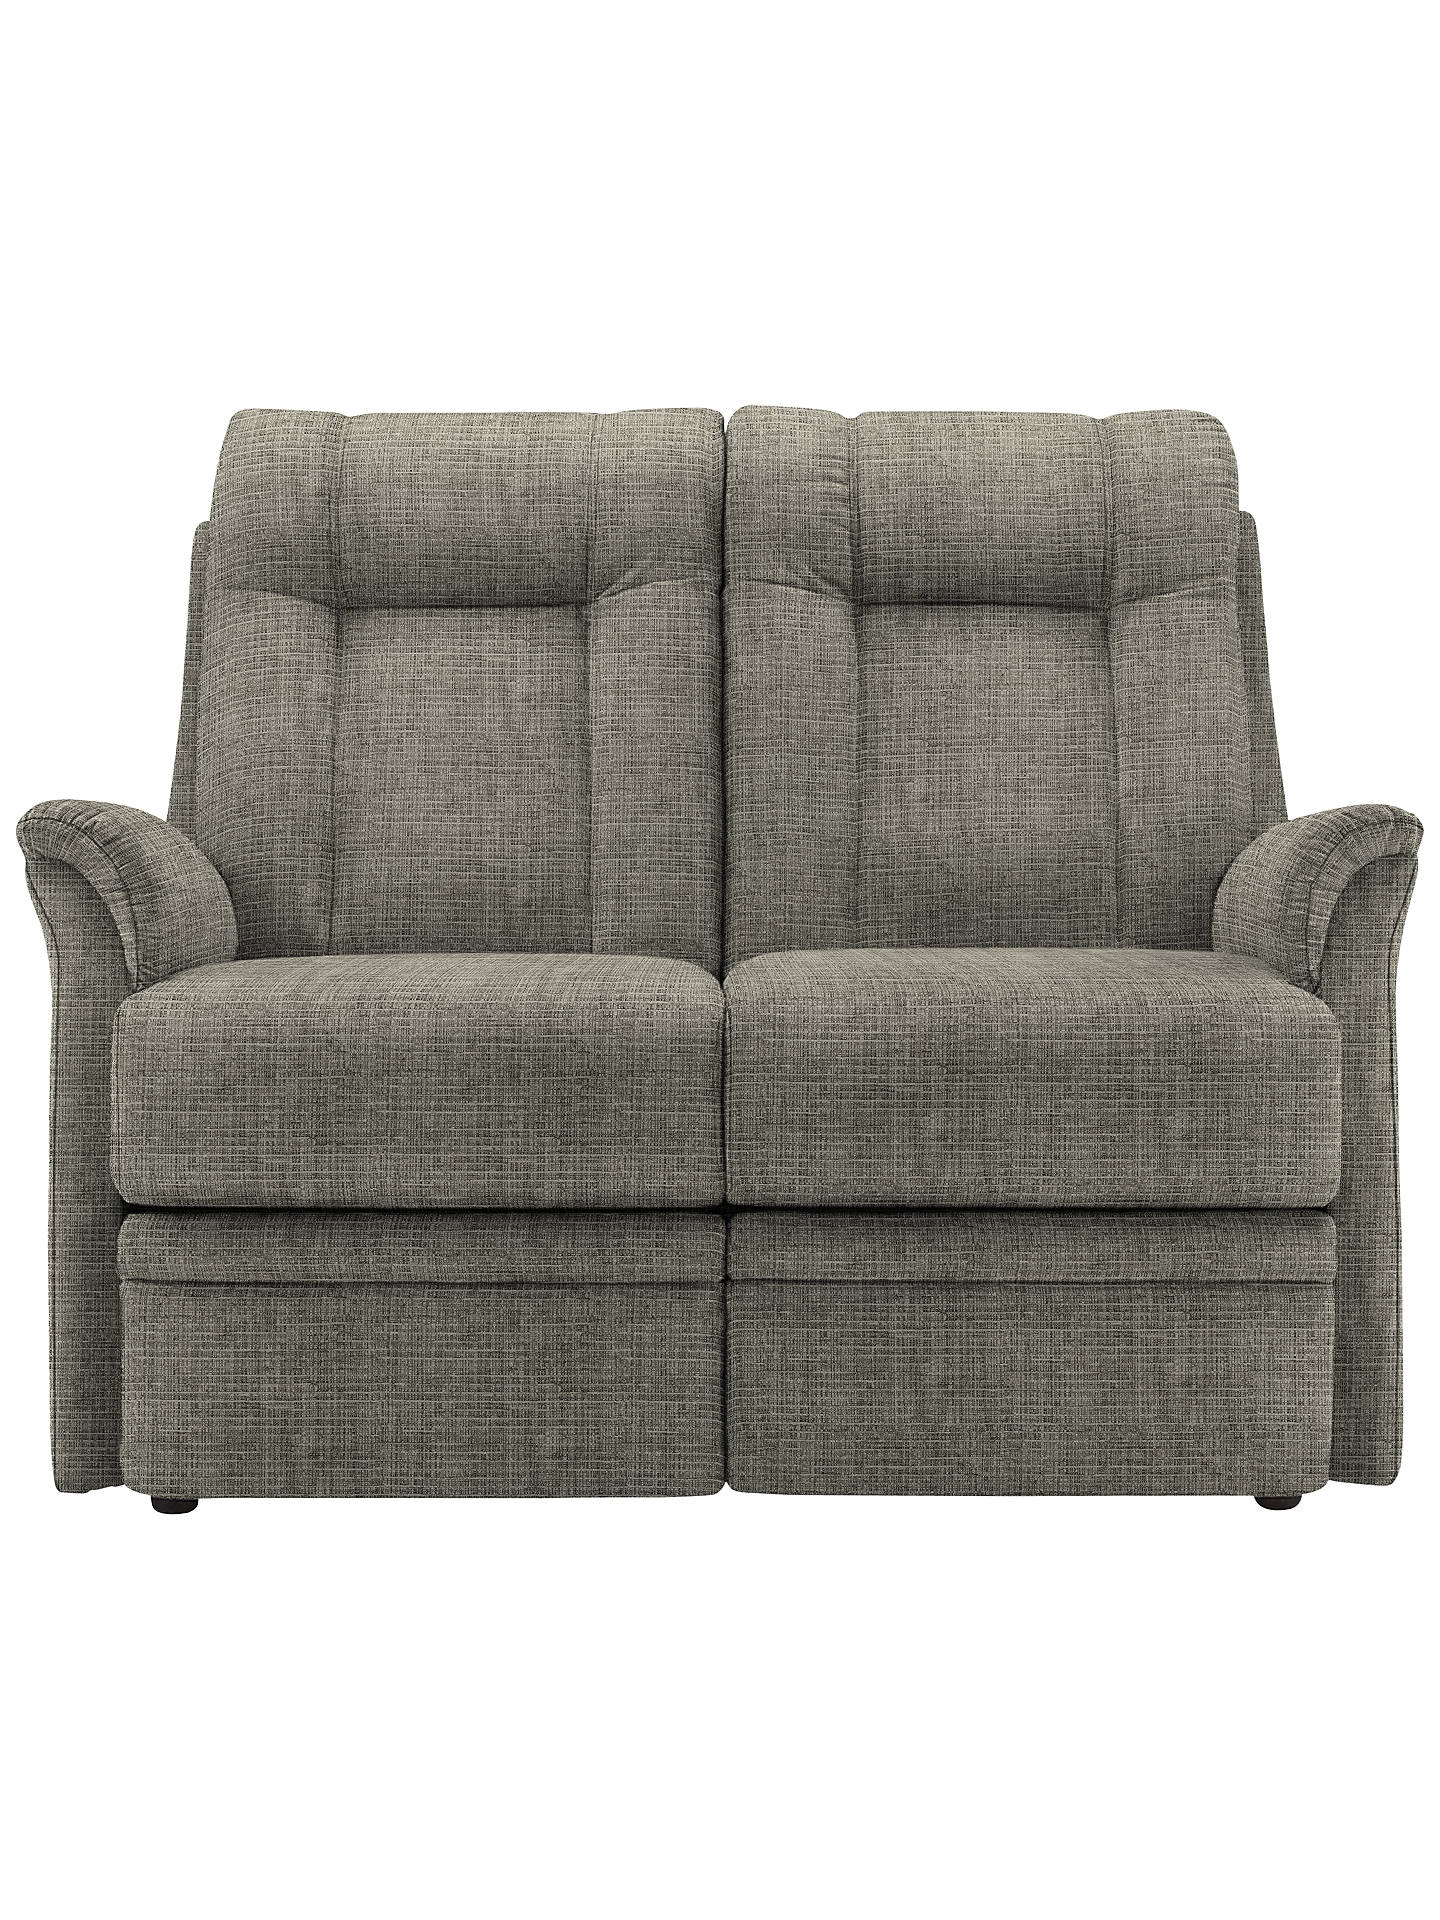 Astounding G Plan Vintage Novello 2 Seater Recliner Sofa At John Lewis Ibusinesslaw Wood Chair Design Ideas Ibusinesslaworg